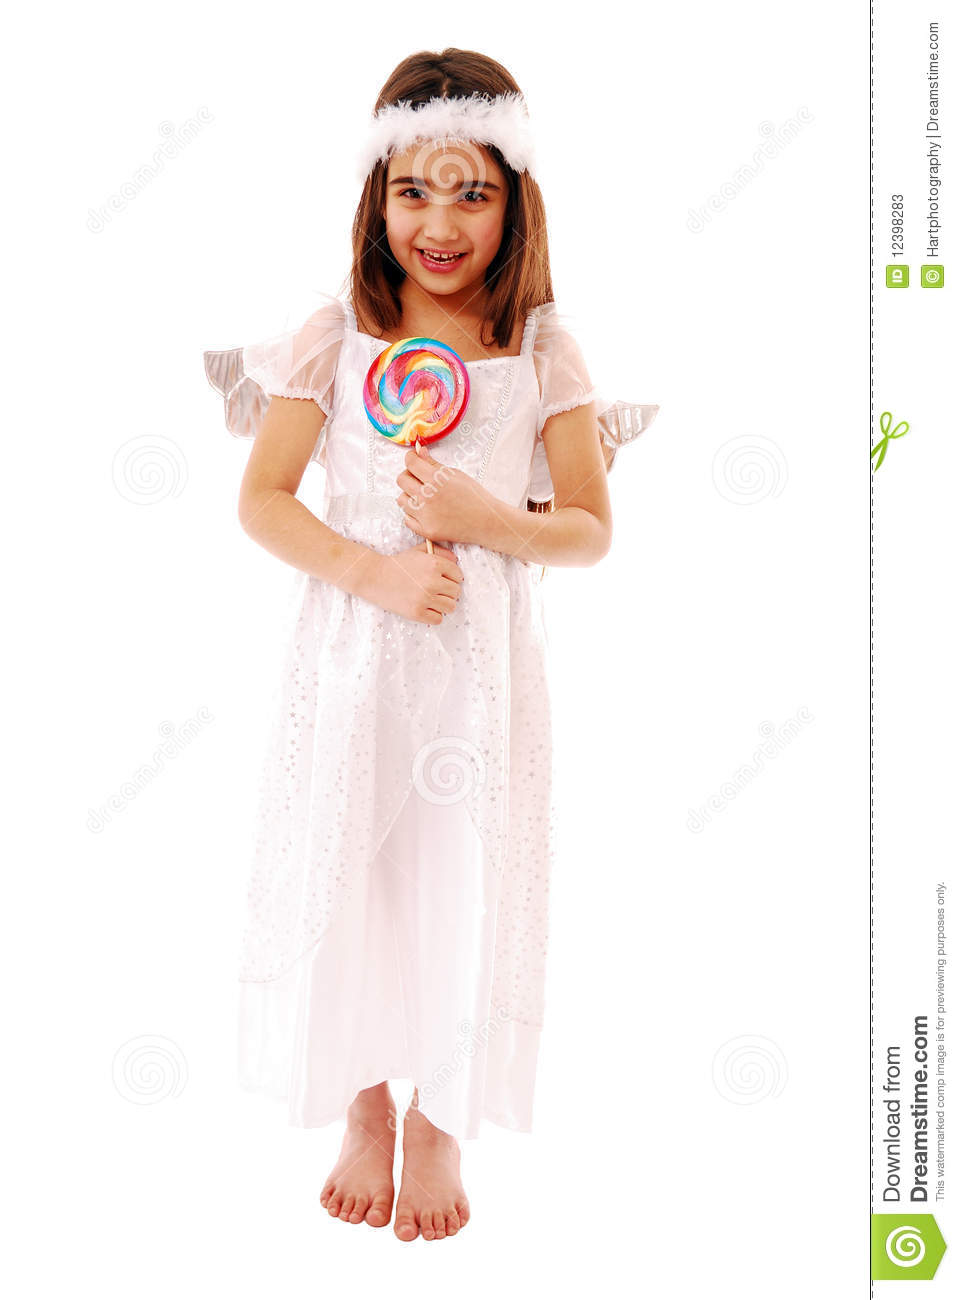 Adorable girl holding lolly pop